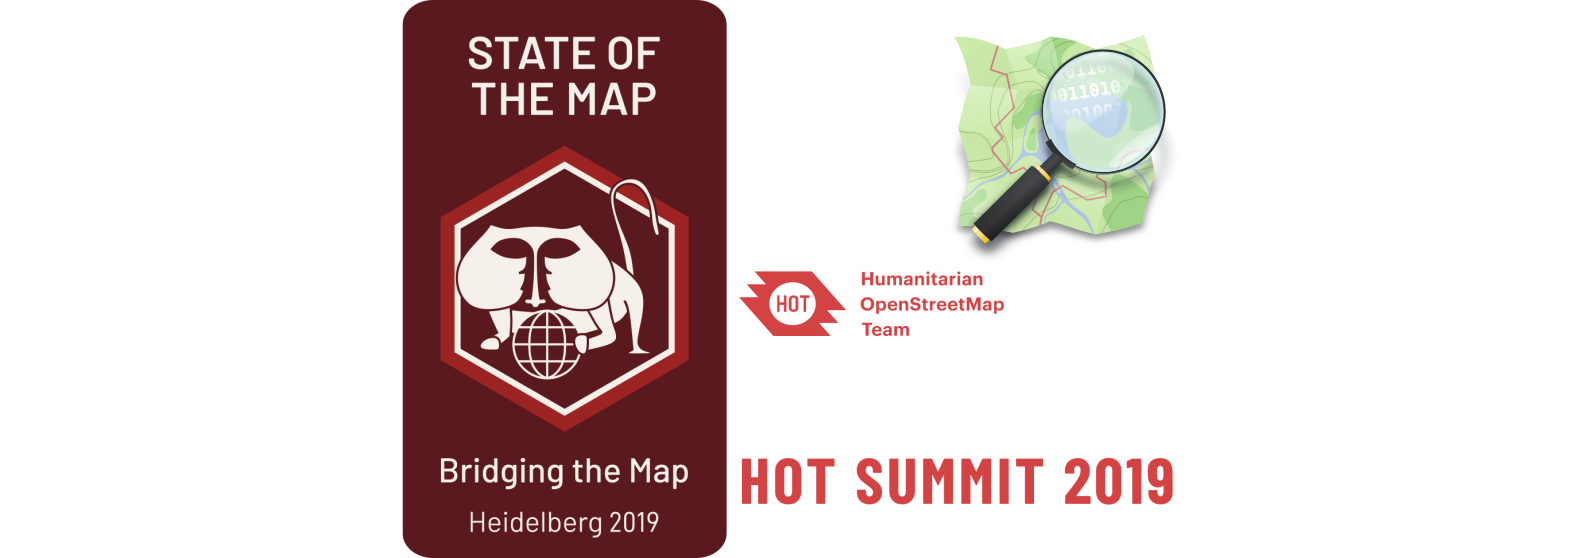 "Próximos eventos relacionados con OSM, ""State of the map"" e ""HOT summit"""